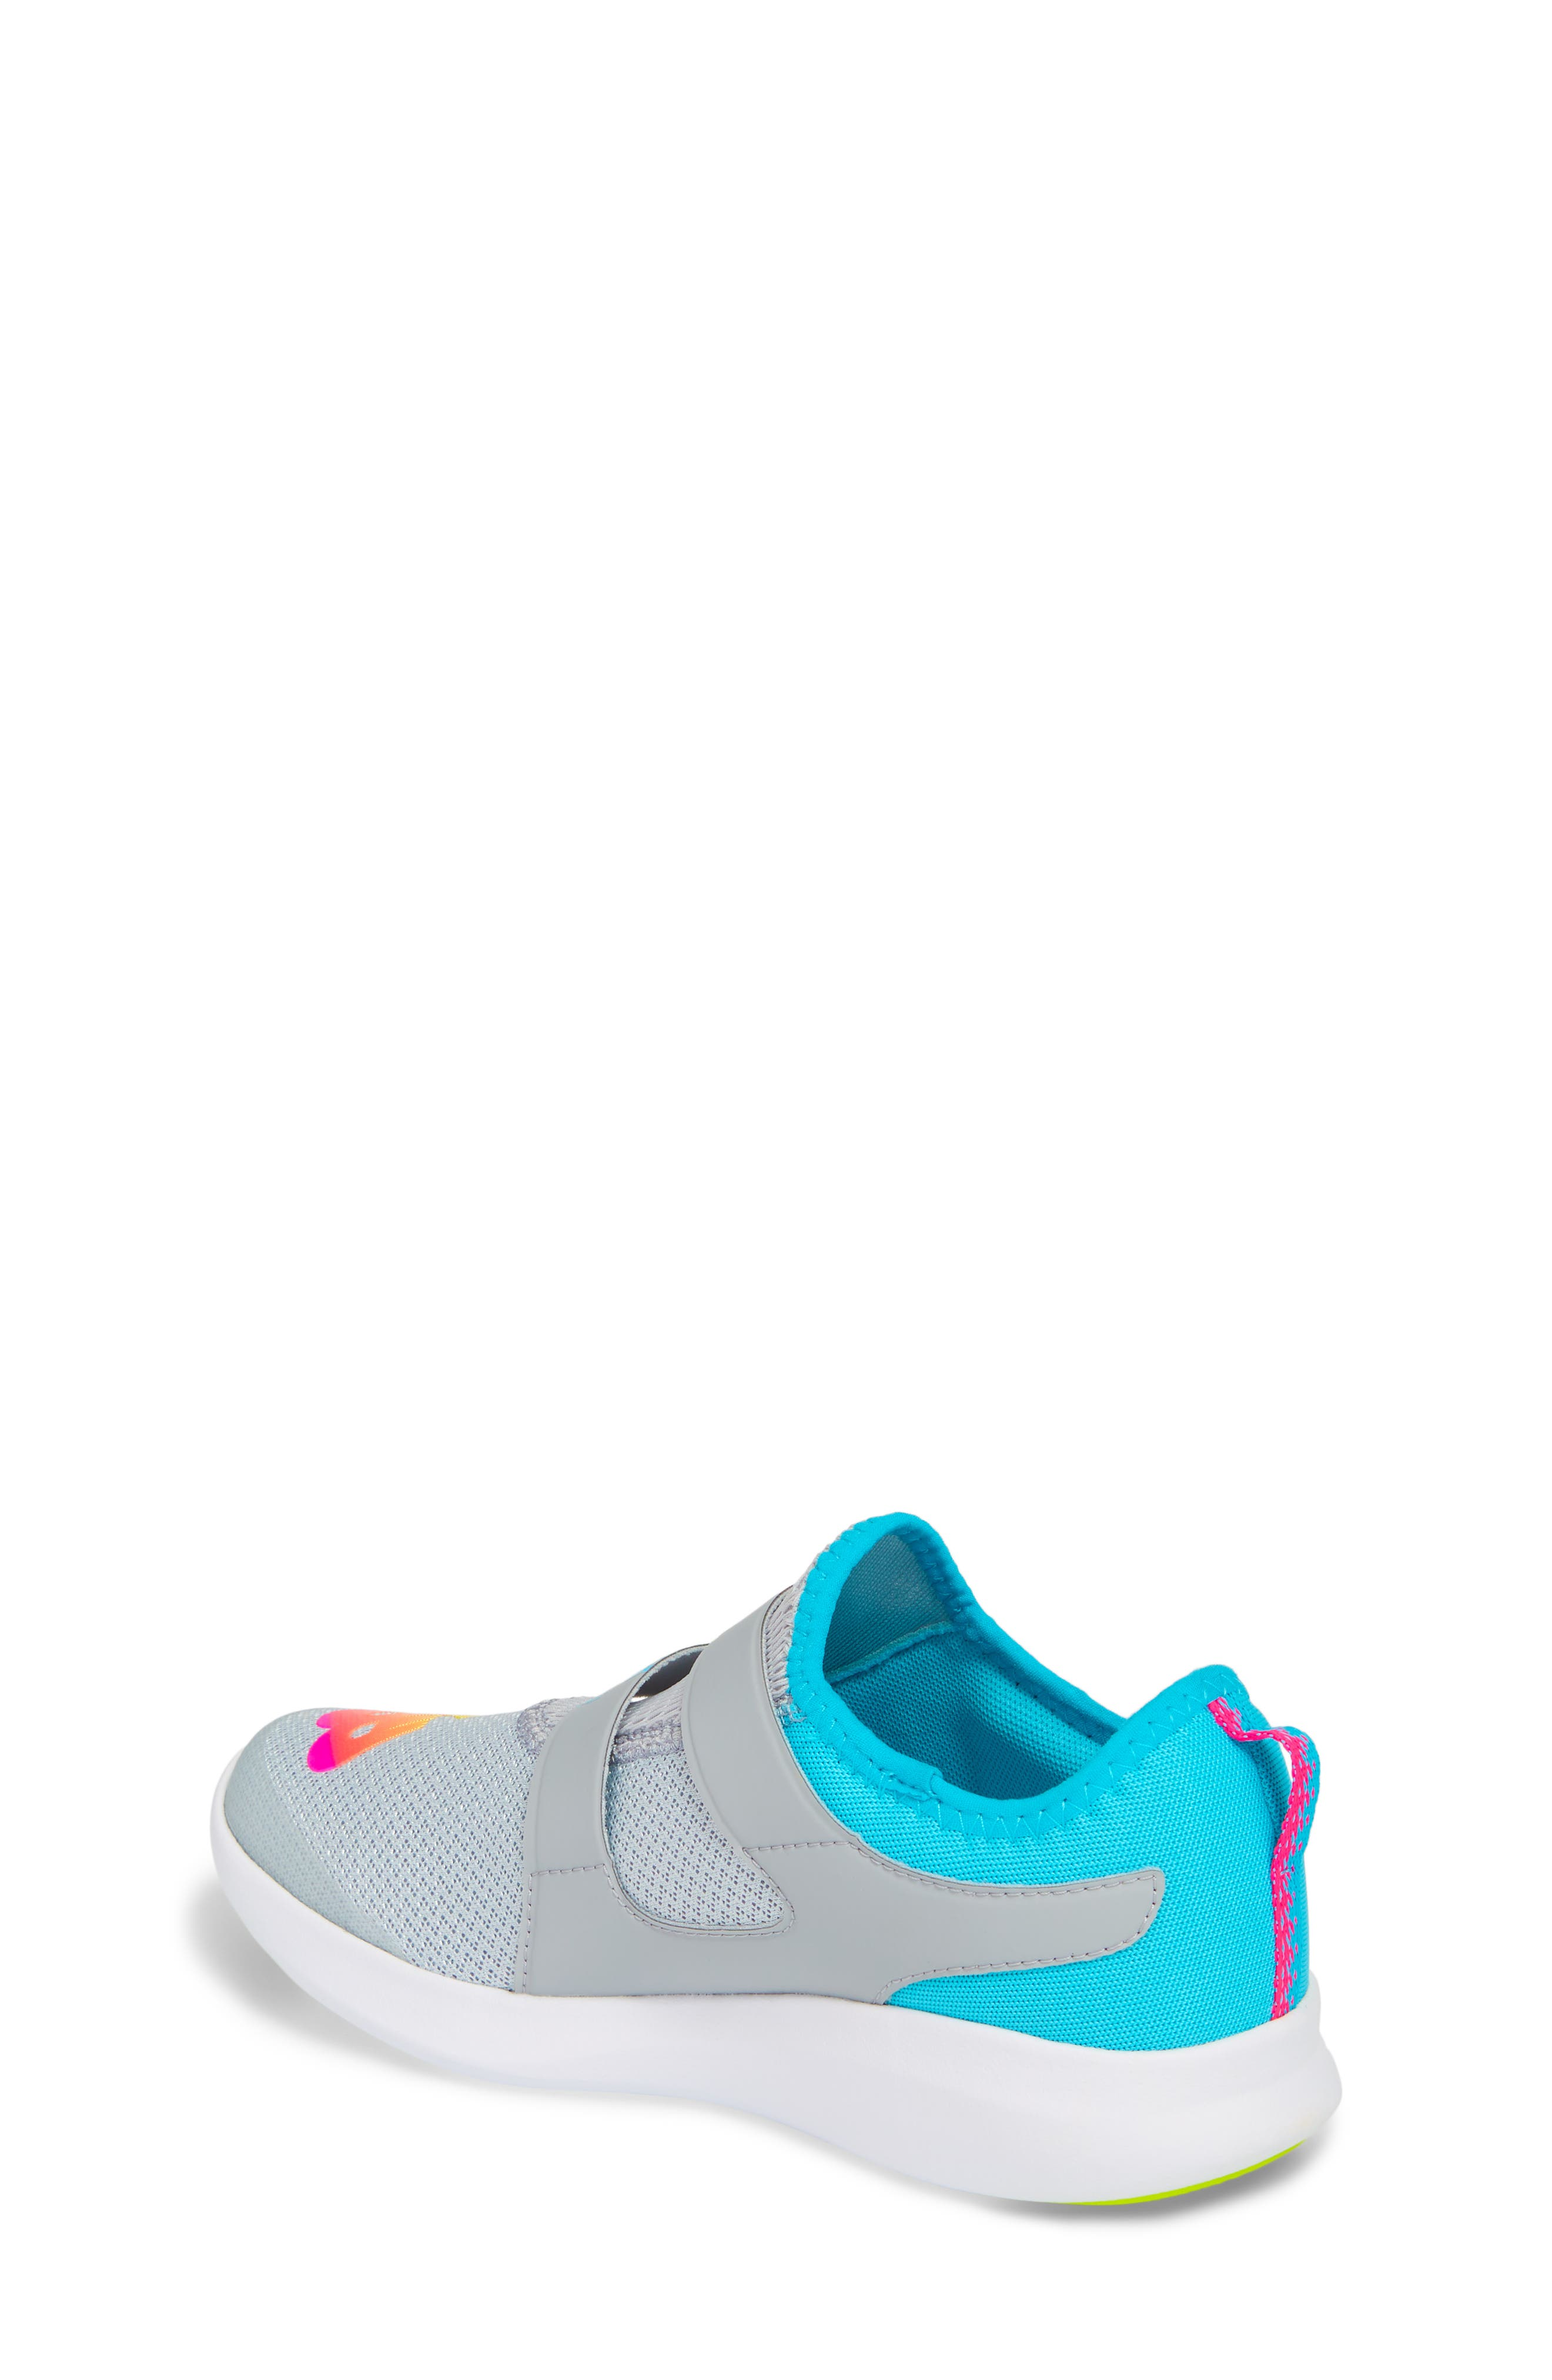 BKO Running Shoe,                             Alternate thumbnail 5, color,